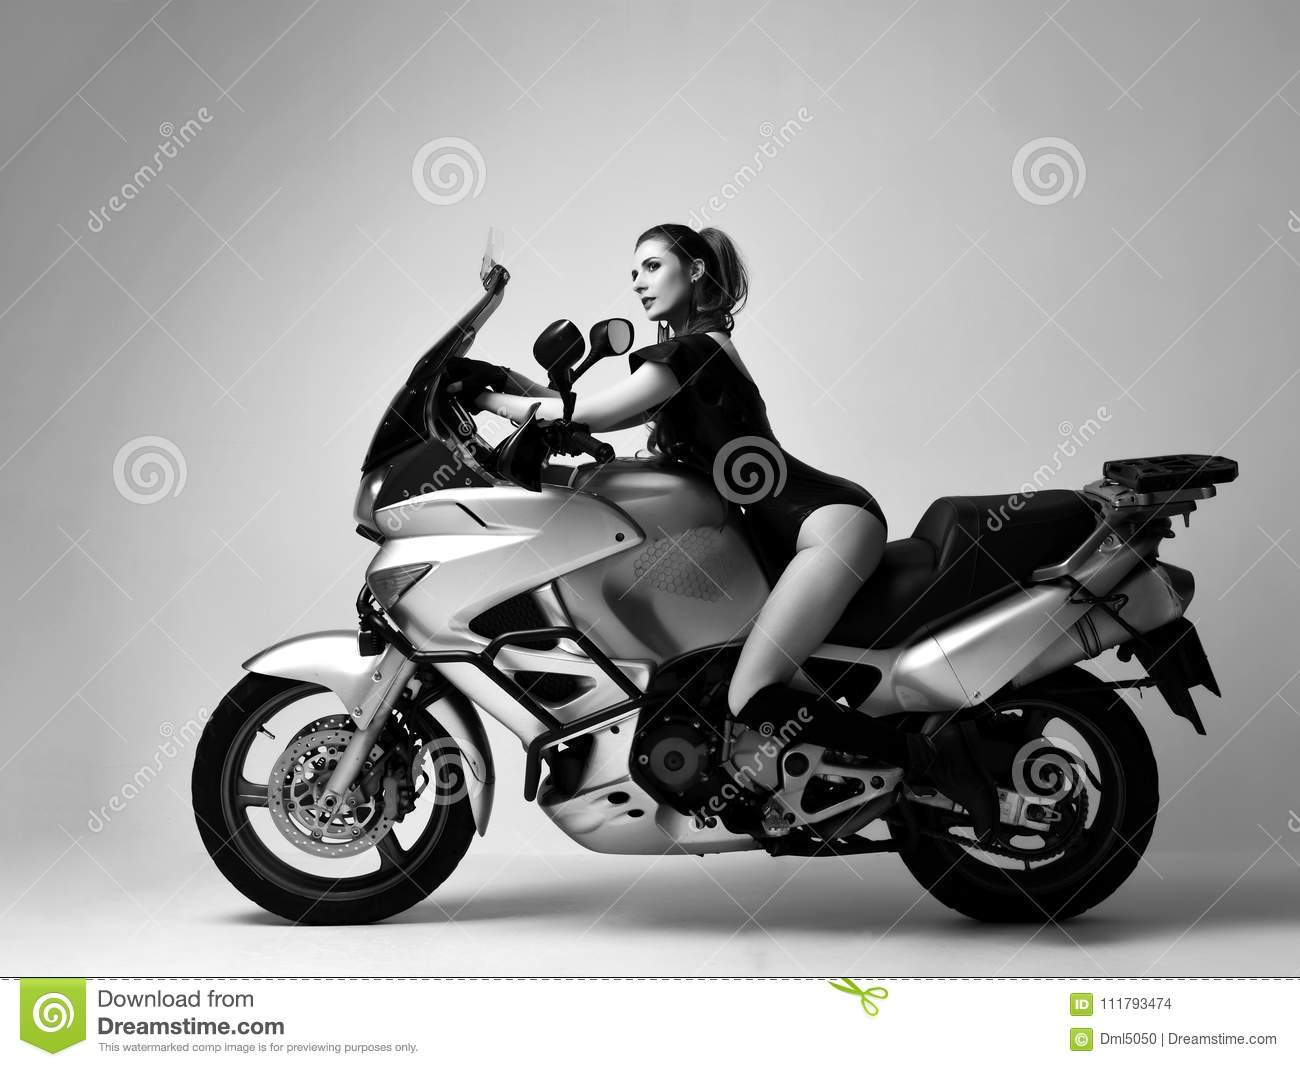 Young fashion woman sitting posing on motorcycle in studio